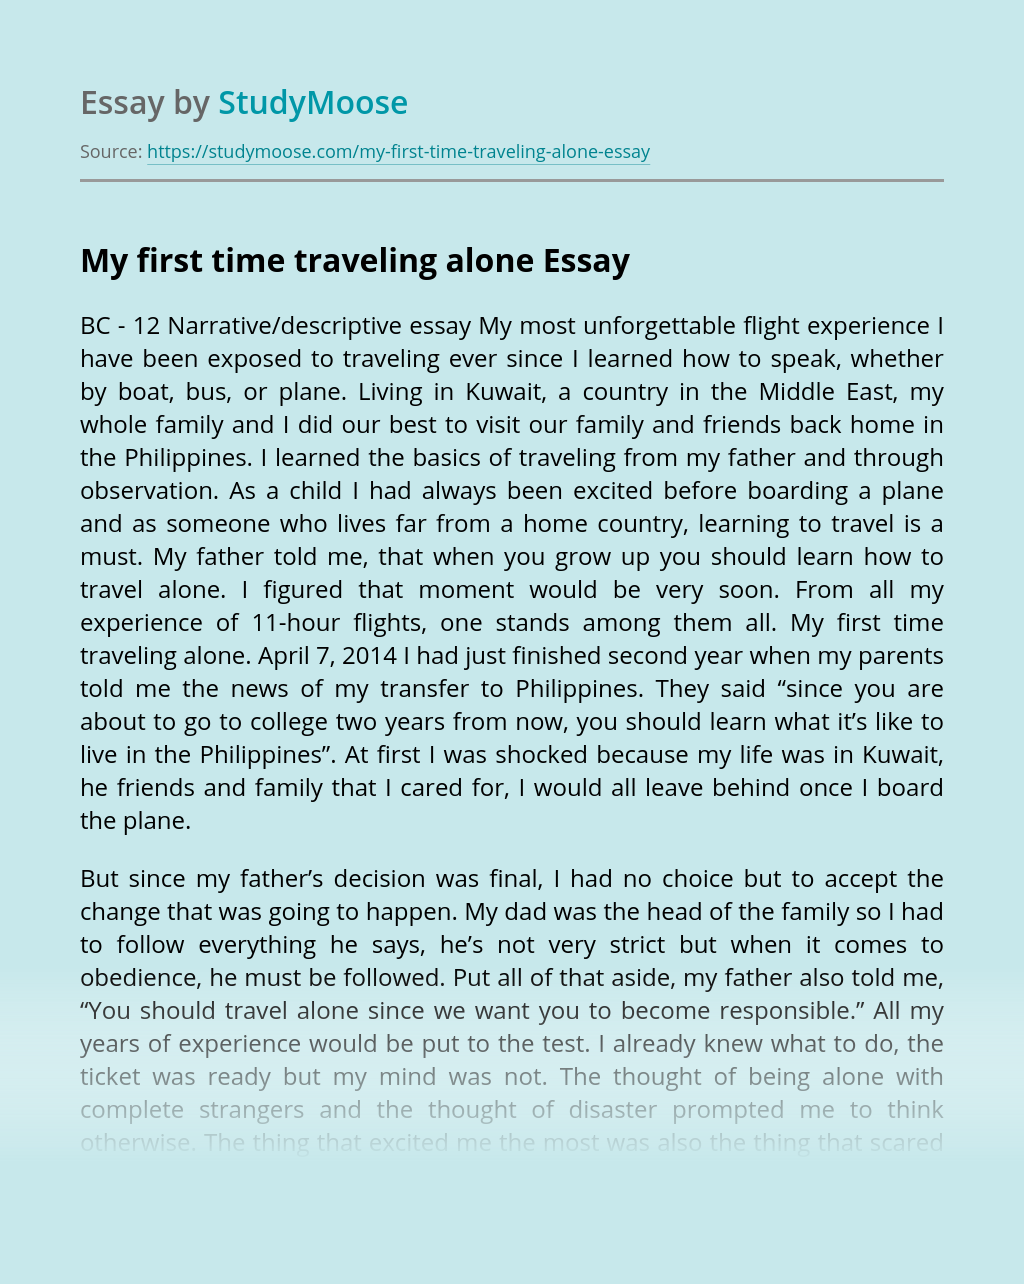 My first time traveling alone